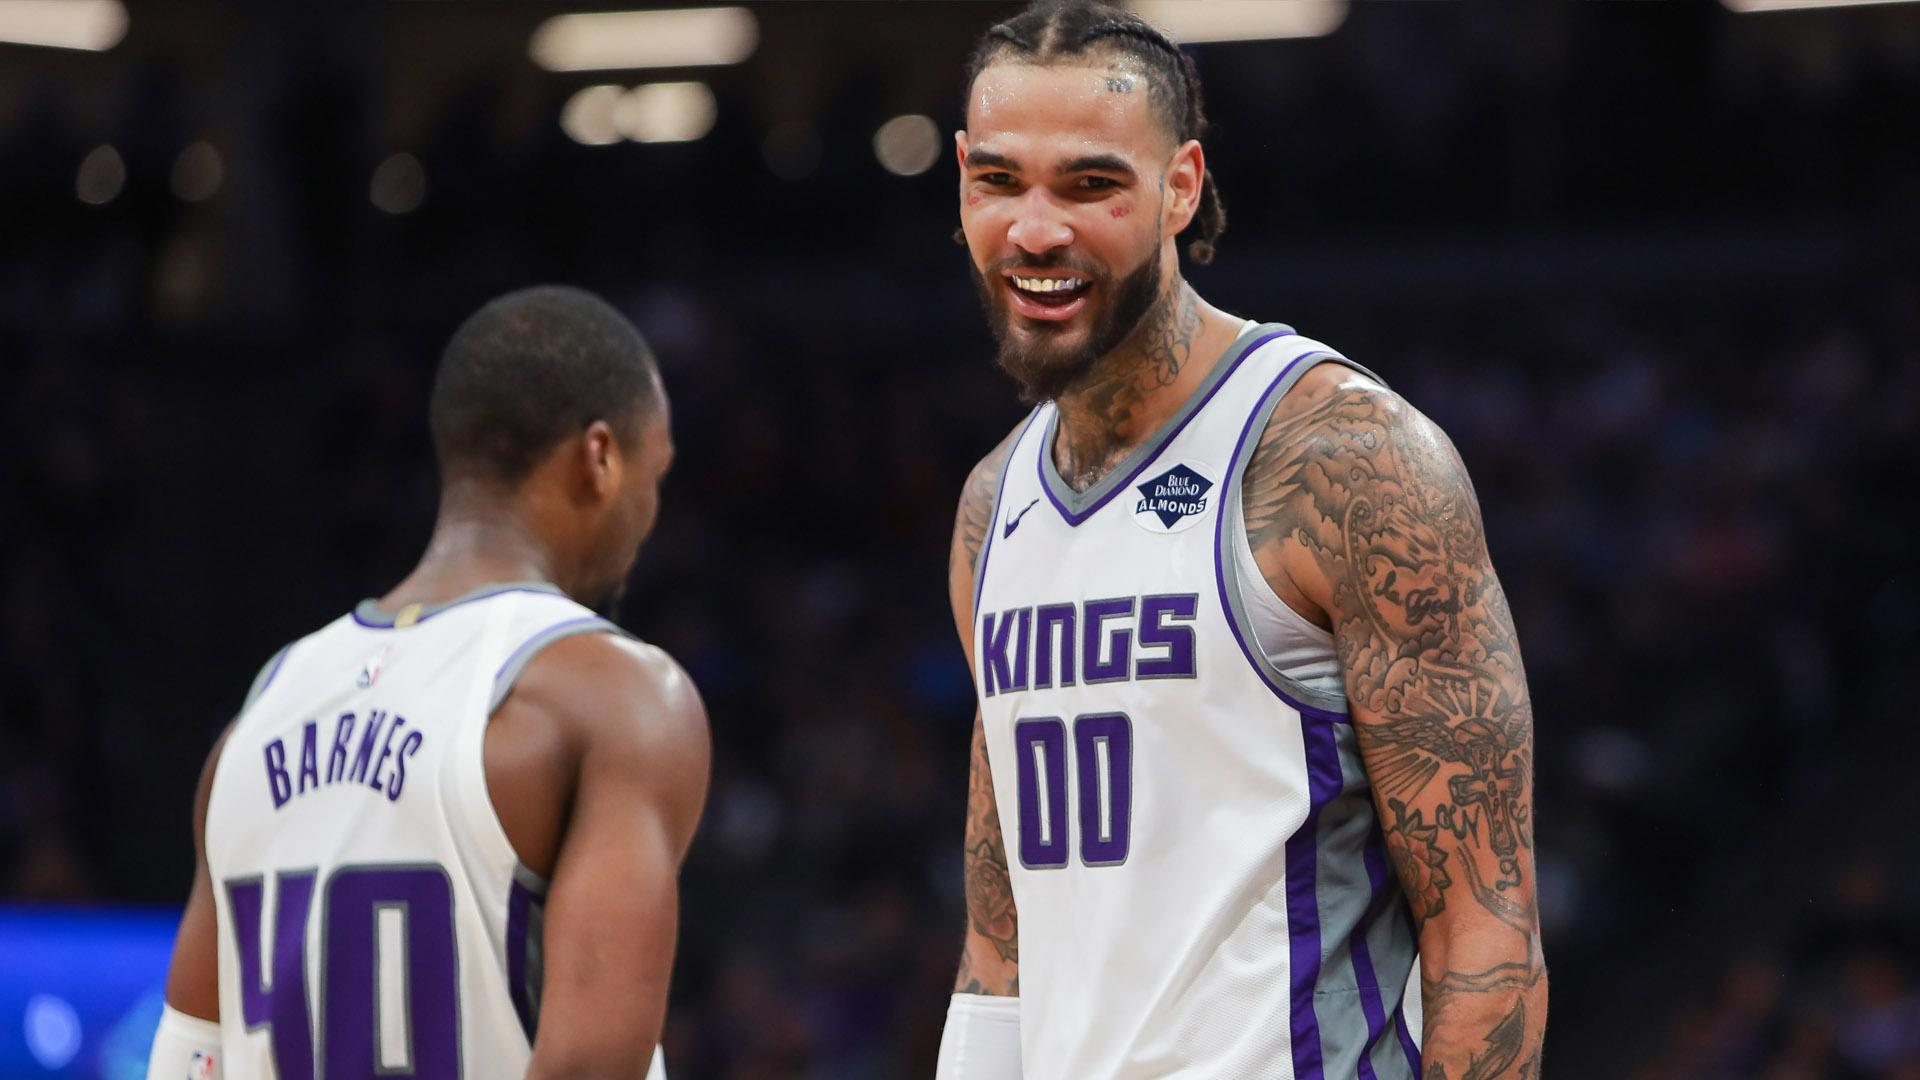 Willie Cauley-Stein couldn't say no to playing with Steph Curry, Warriors